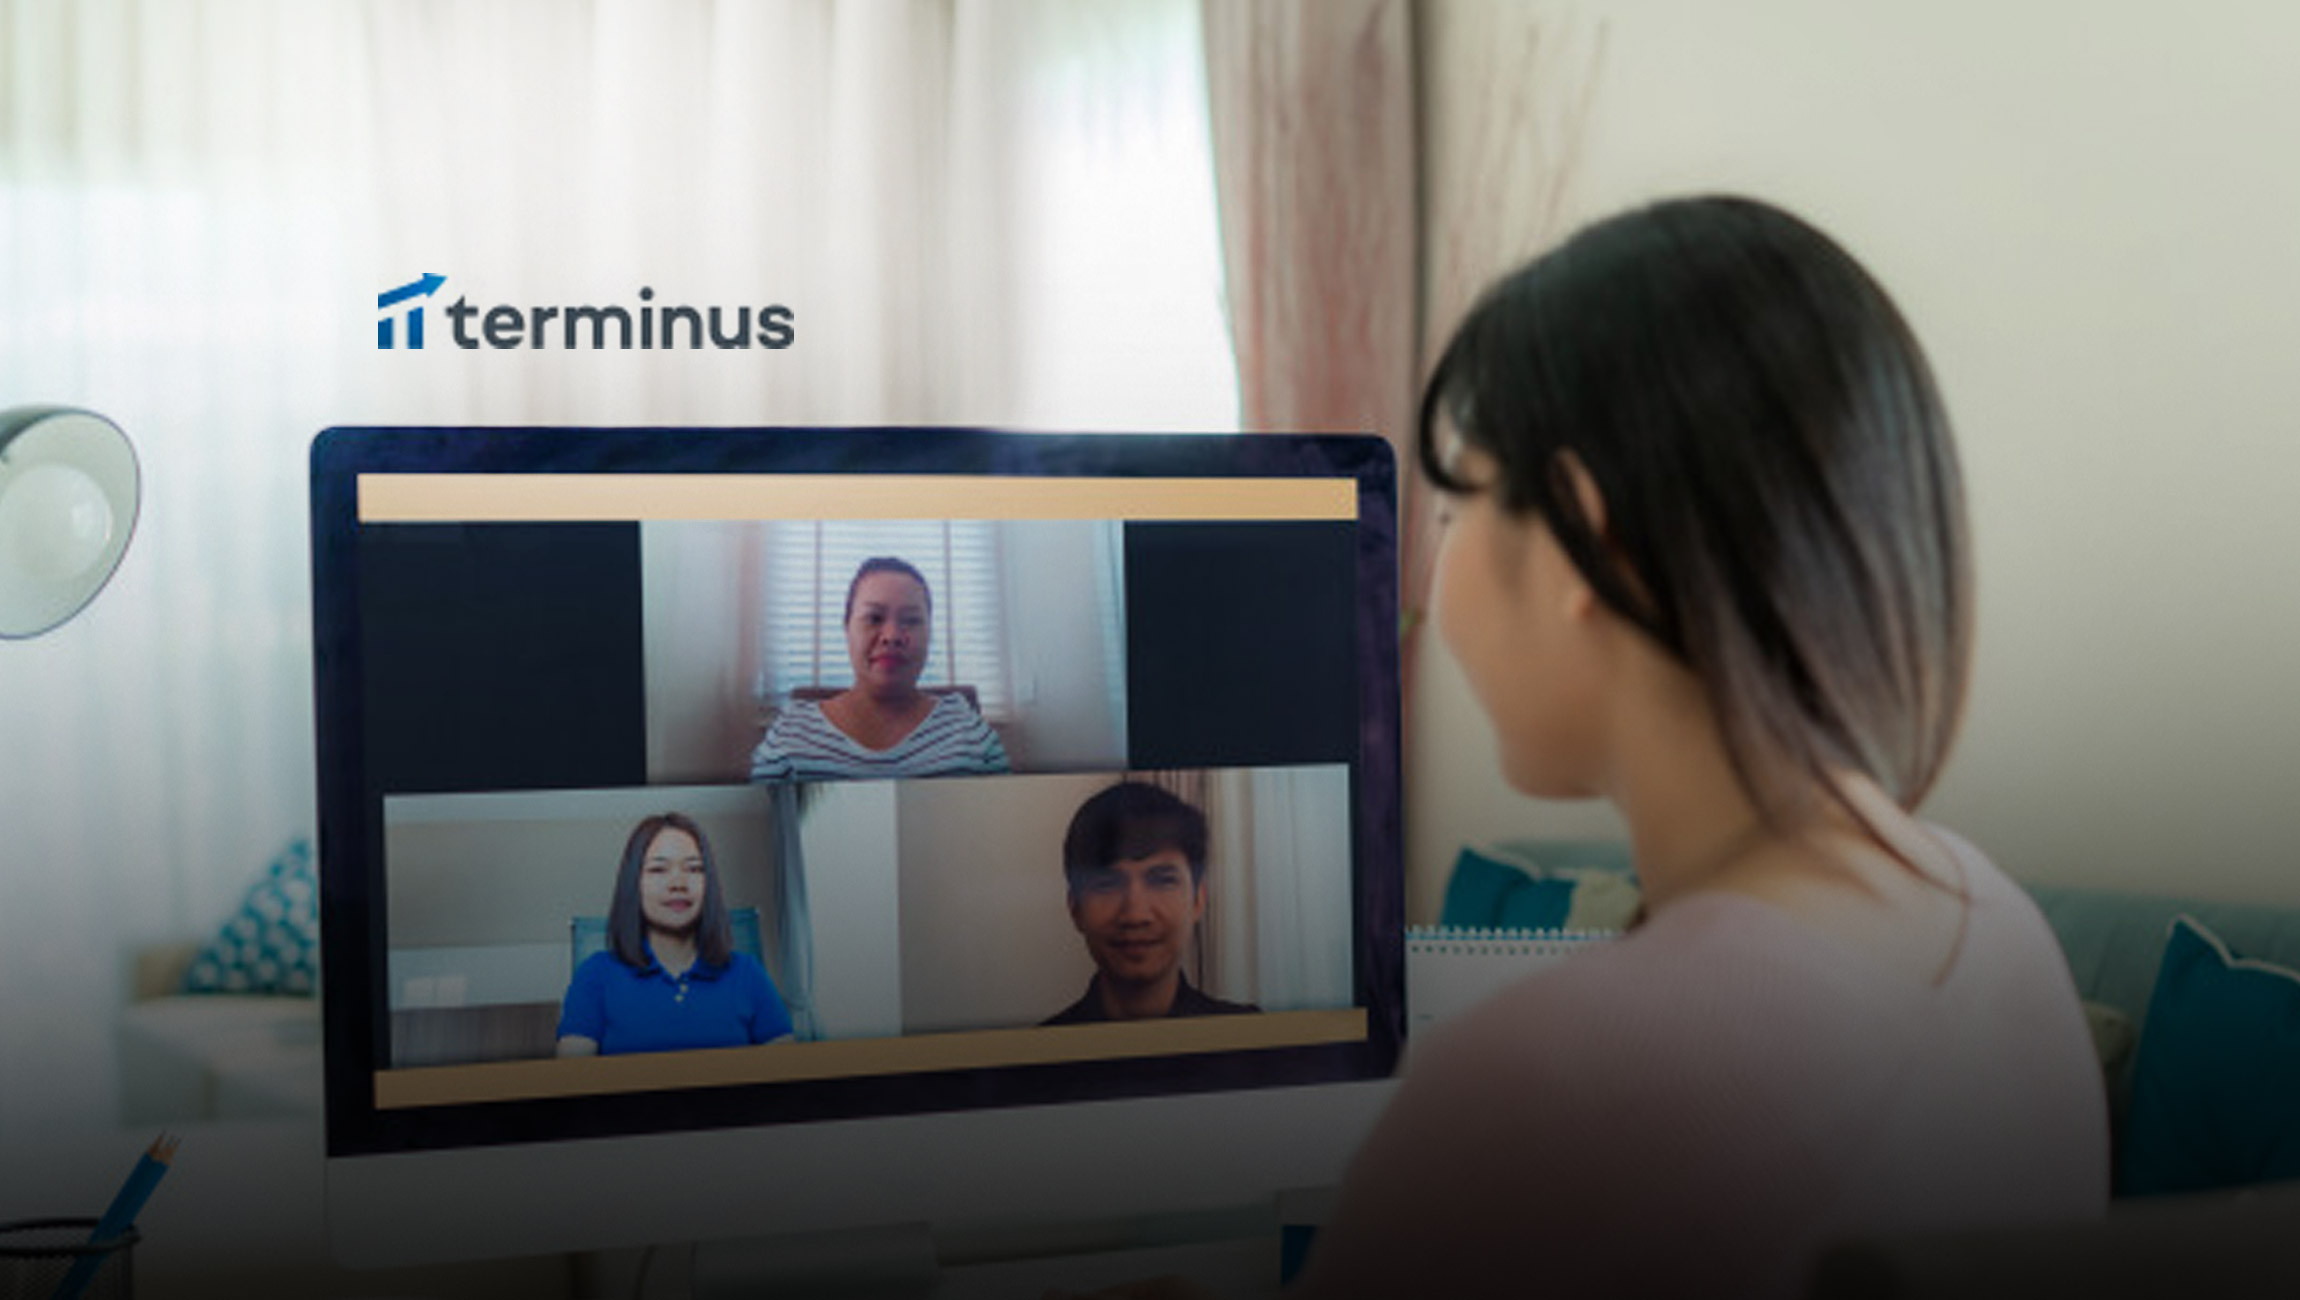 Terminus Enhances Account-Based Platform to Help Customers Better Identify and Reach Buying Teams in Remote Work Environment